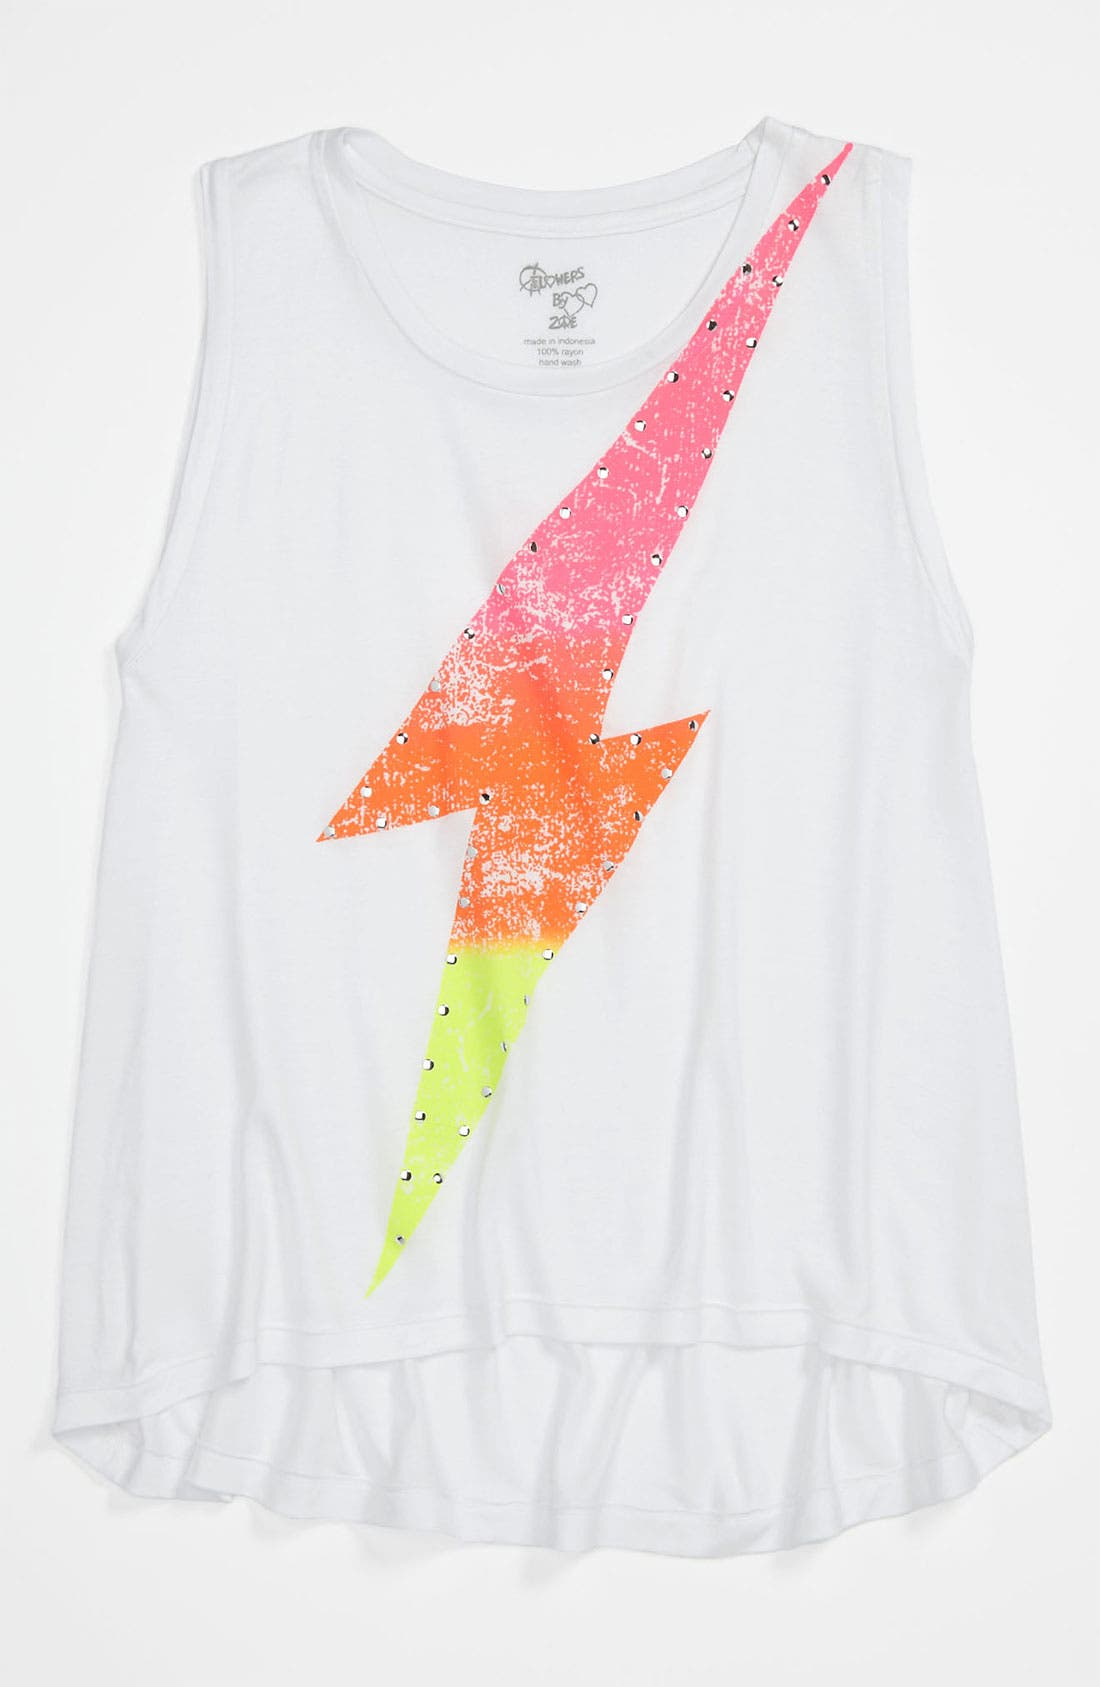 Main Image - Flowers by Zoe 'Lightning Bolt' Tee (Big Girls)